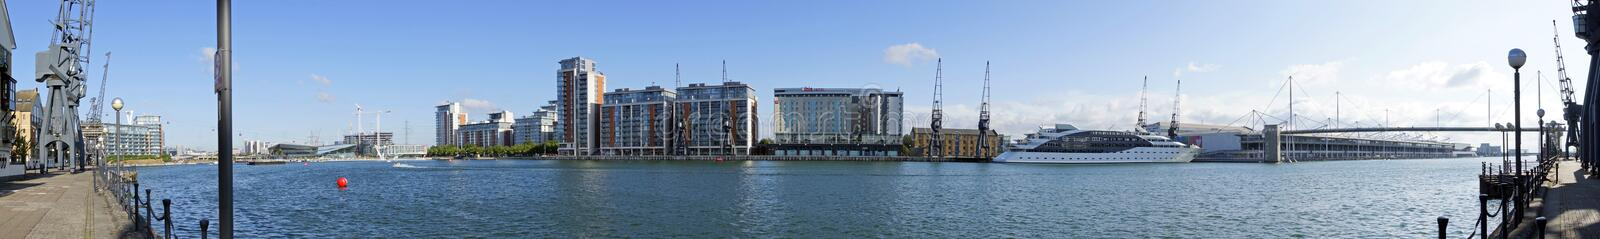 Excel Marina 180 degree panoramic stock photo